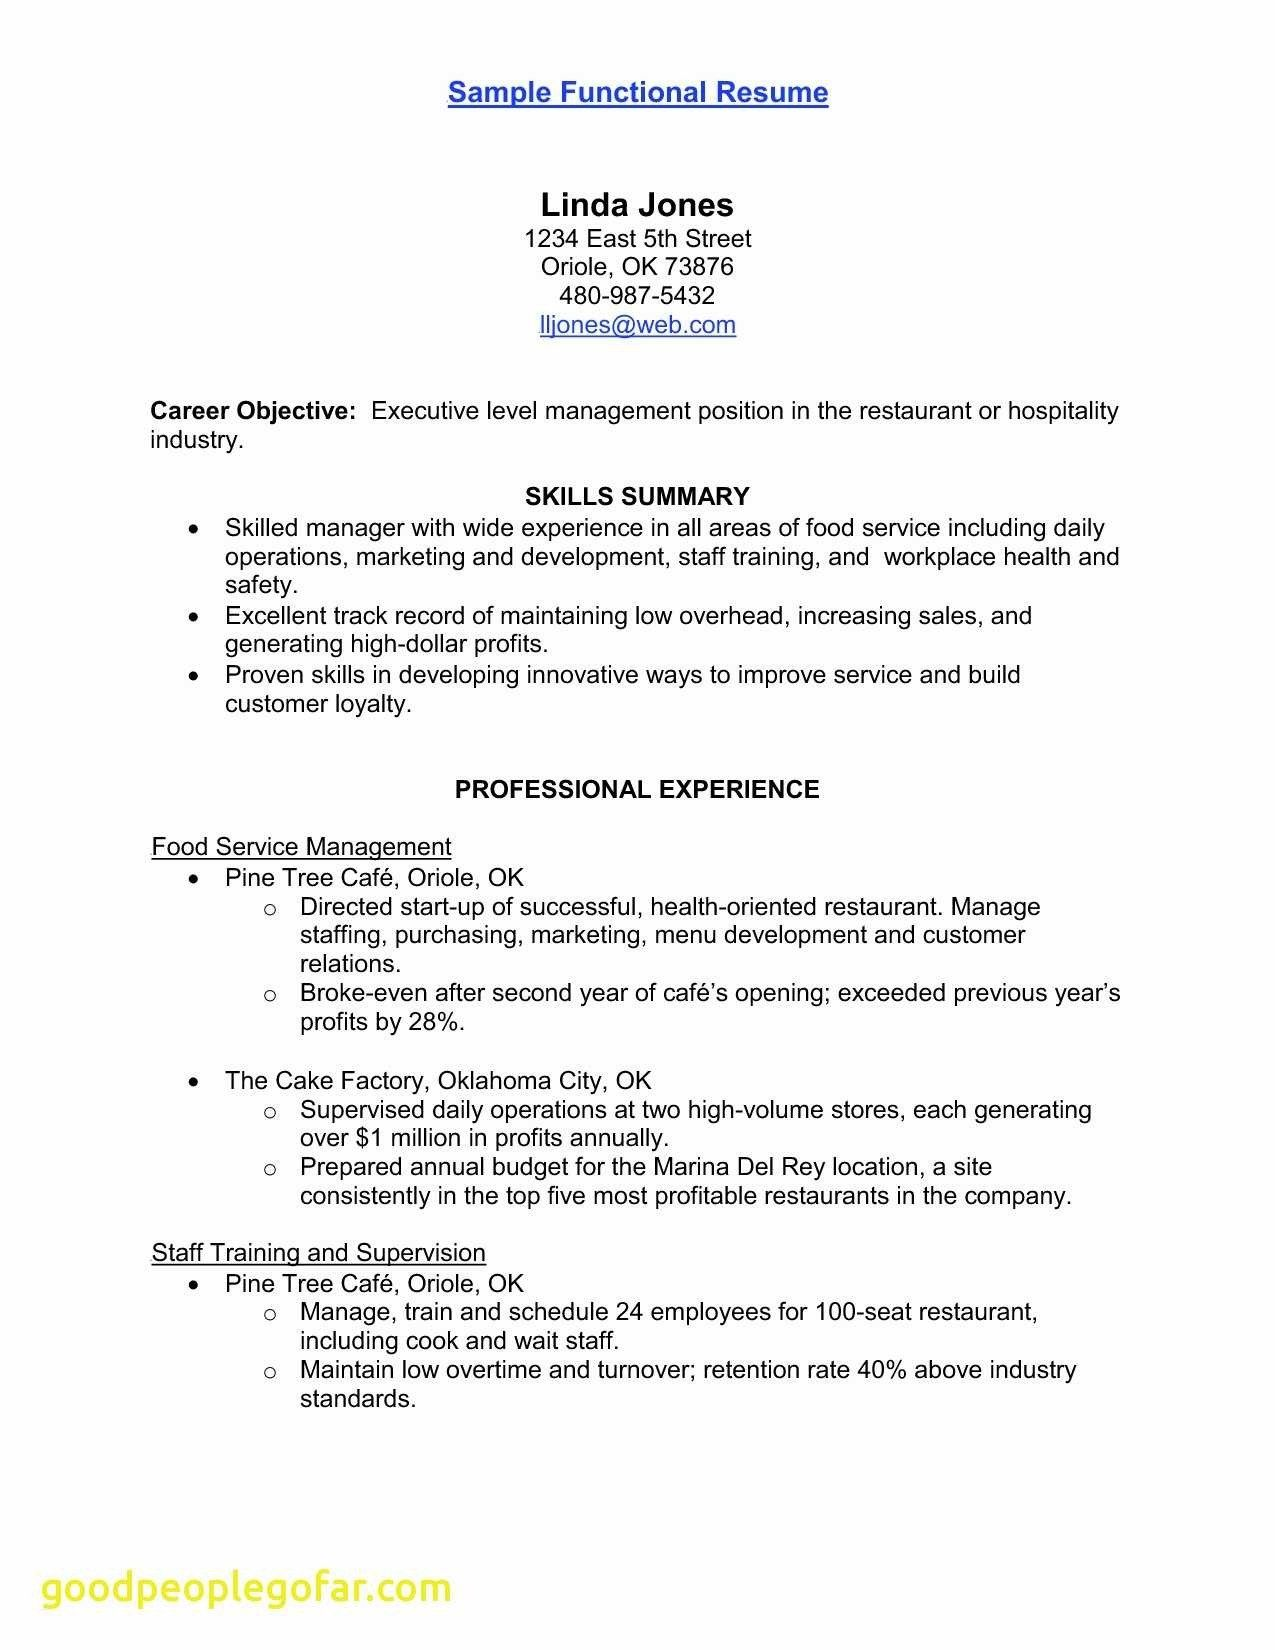 77 Cool Photos Of Sample Resume For Customer Service In Restaurant Check More At Https Www Ourpetscrawley Com 77 Coo Resume Examples Functional Resume Resume Sample resume for assembly line workers